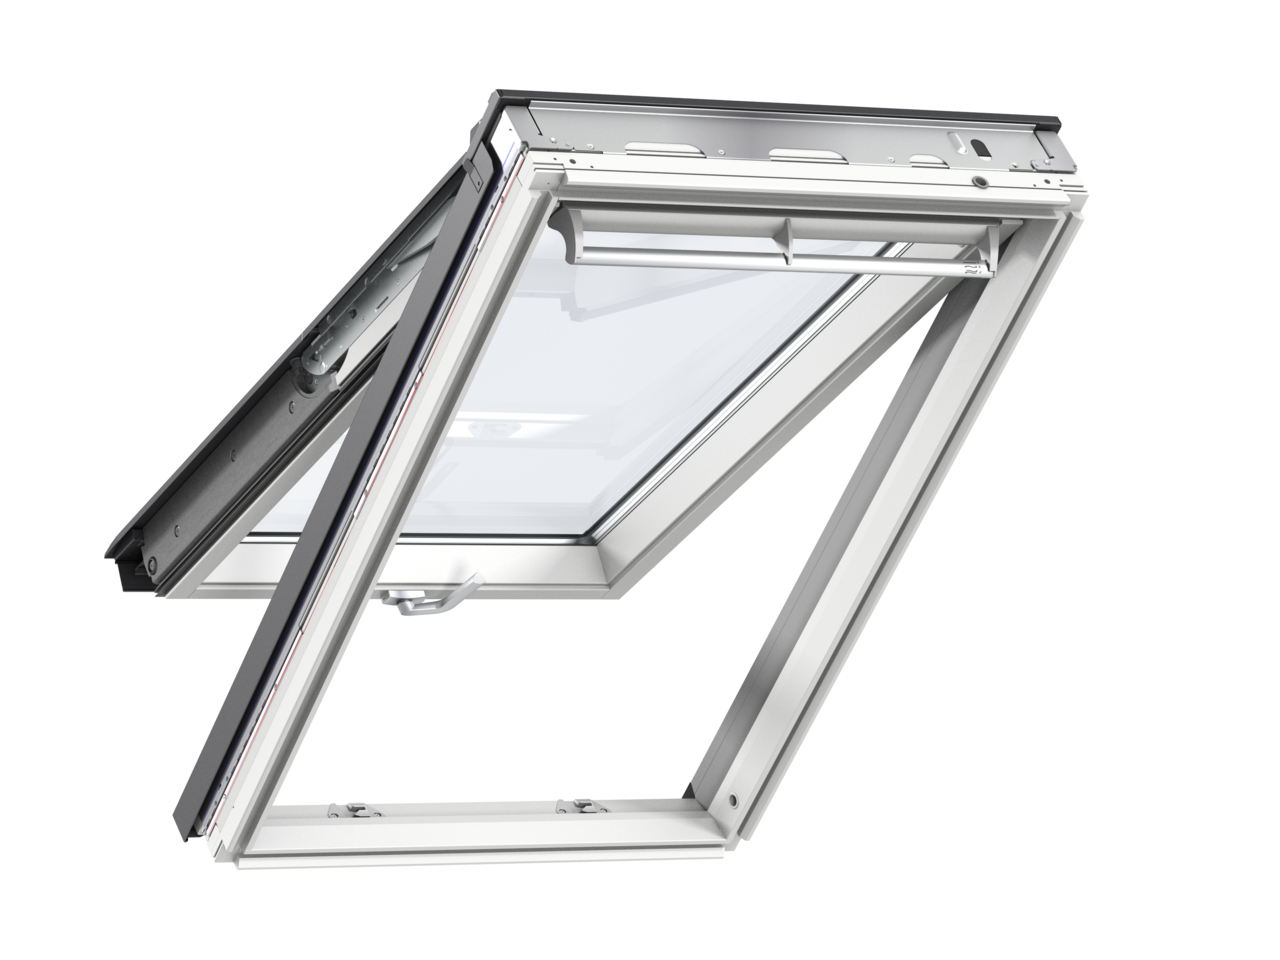 Velux GPL MK06 780 x 1180mm Top Hung Standard 70Pane Roof Window - White Painted